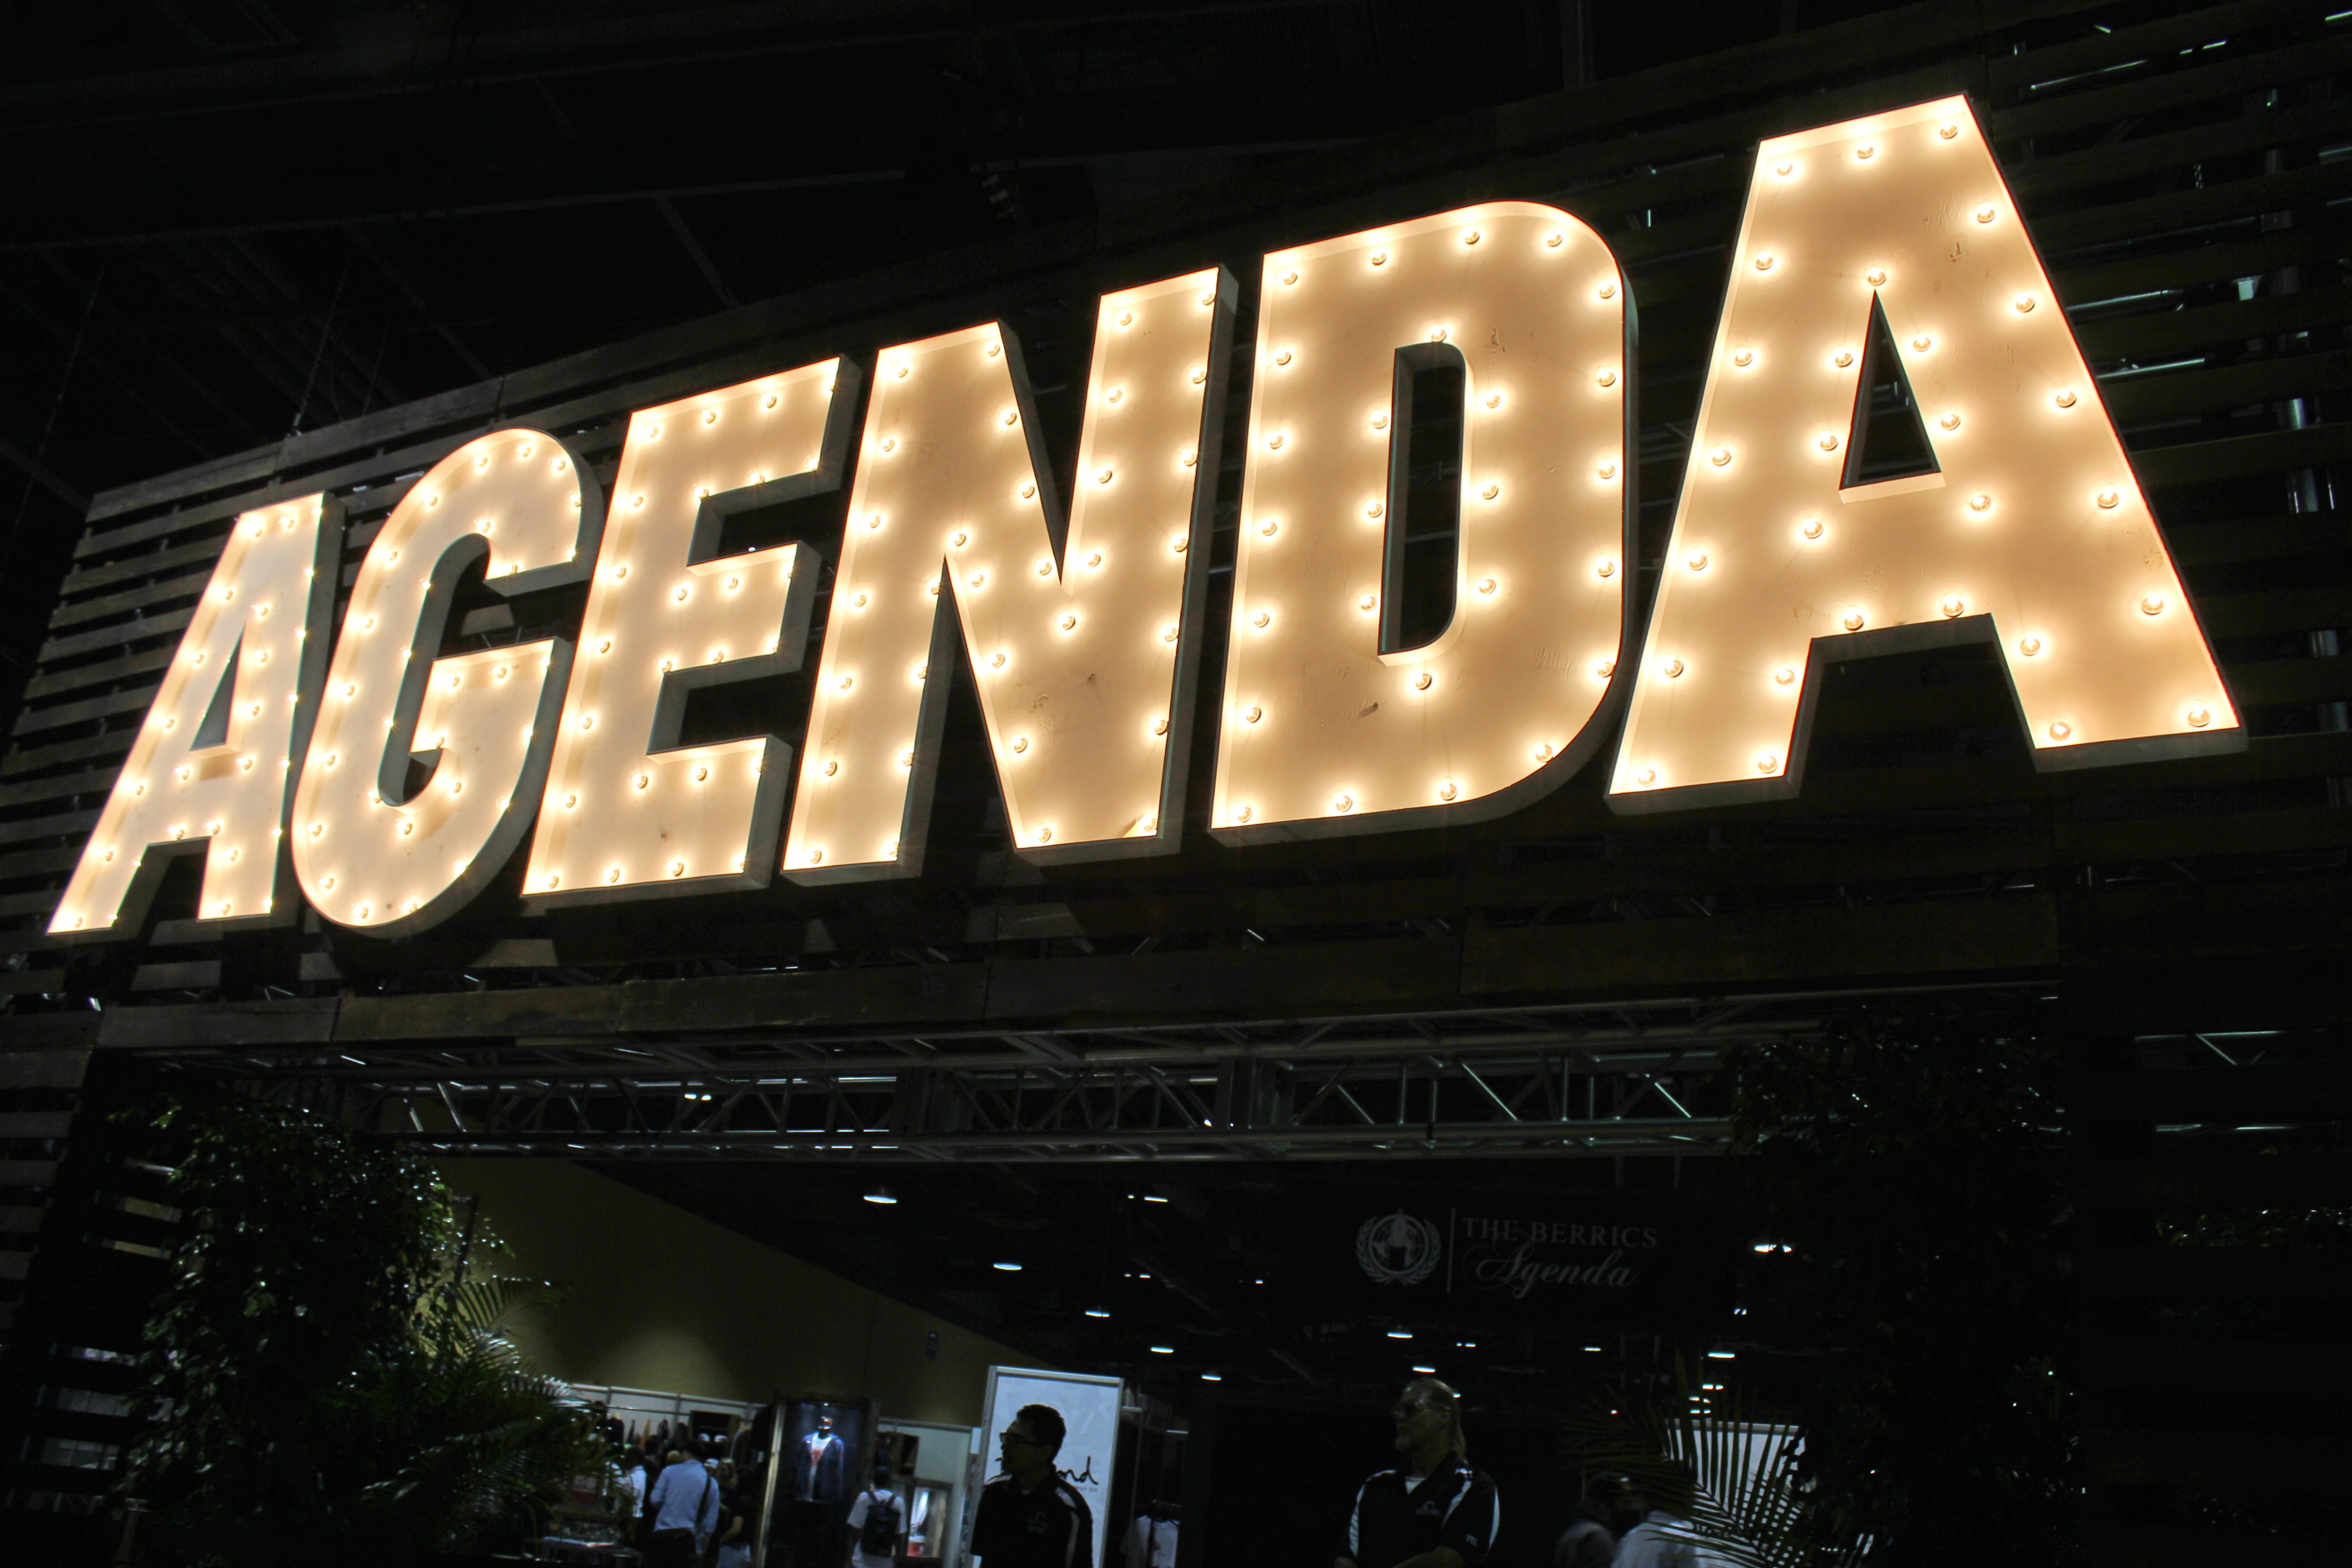 What you have missed at Agenda tradeshow